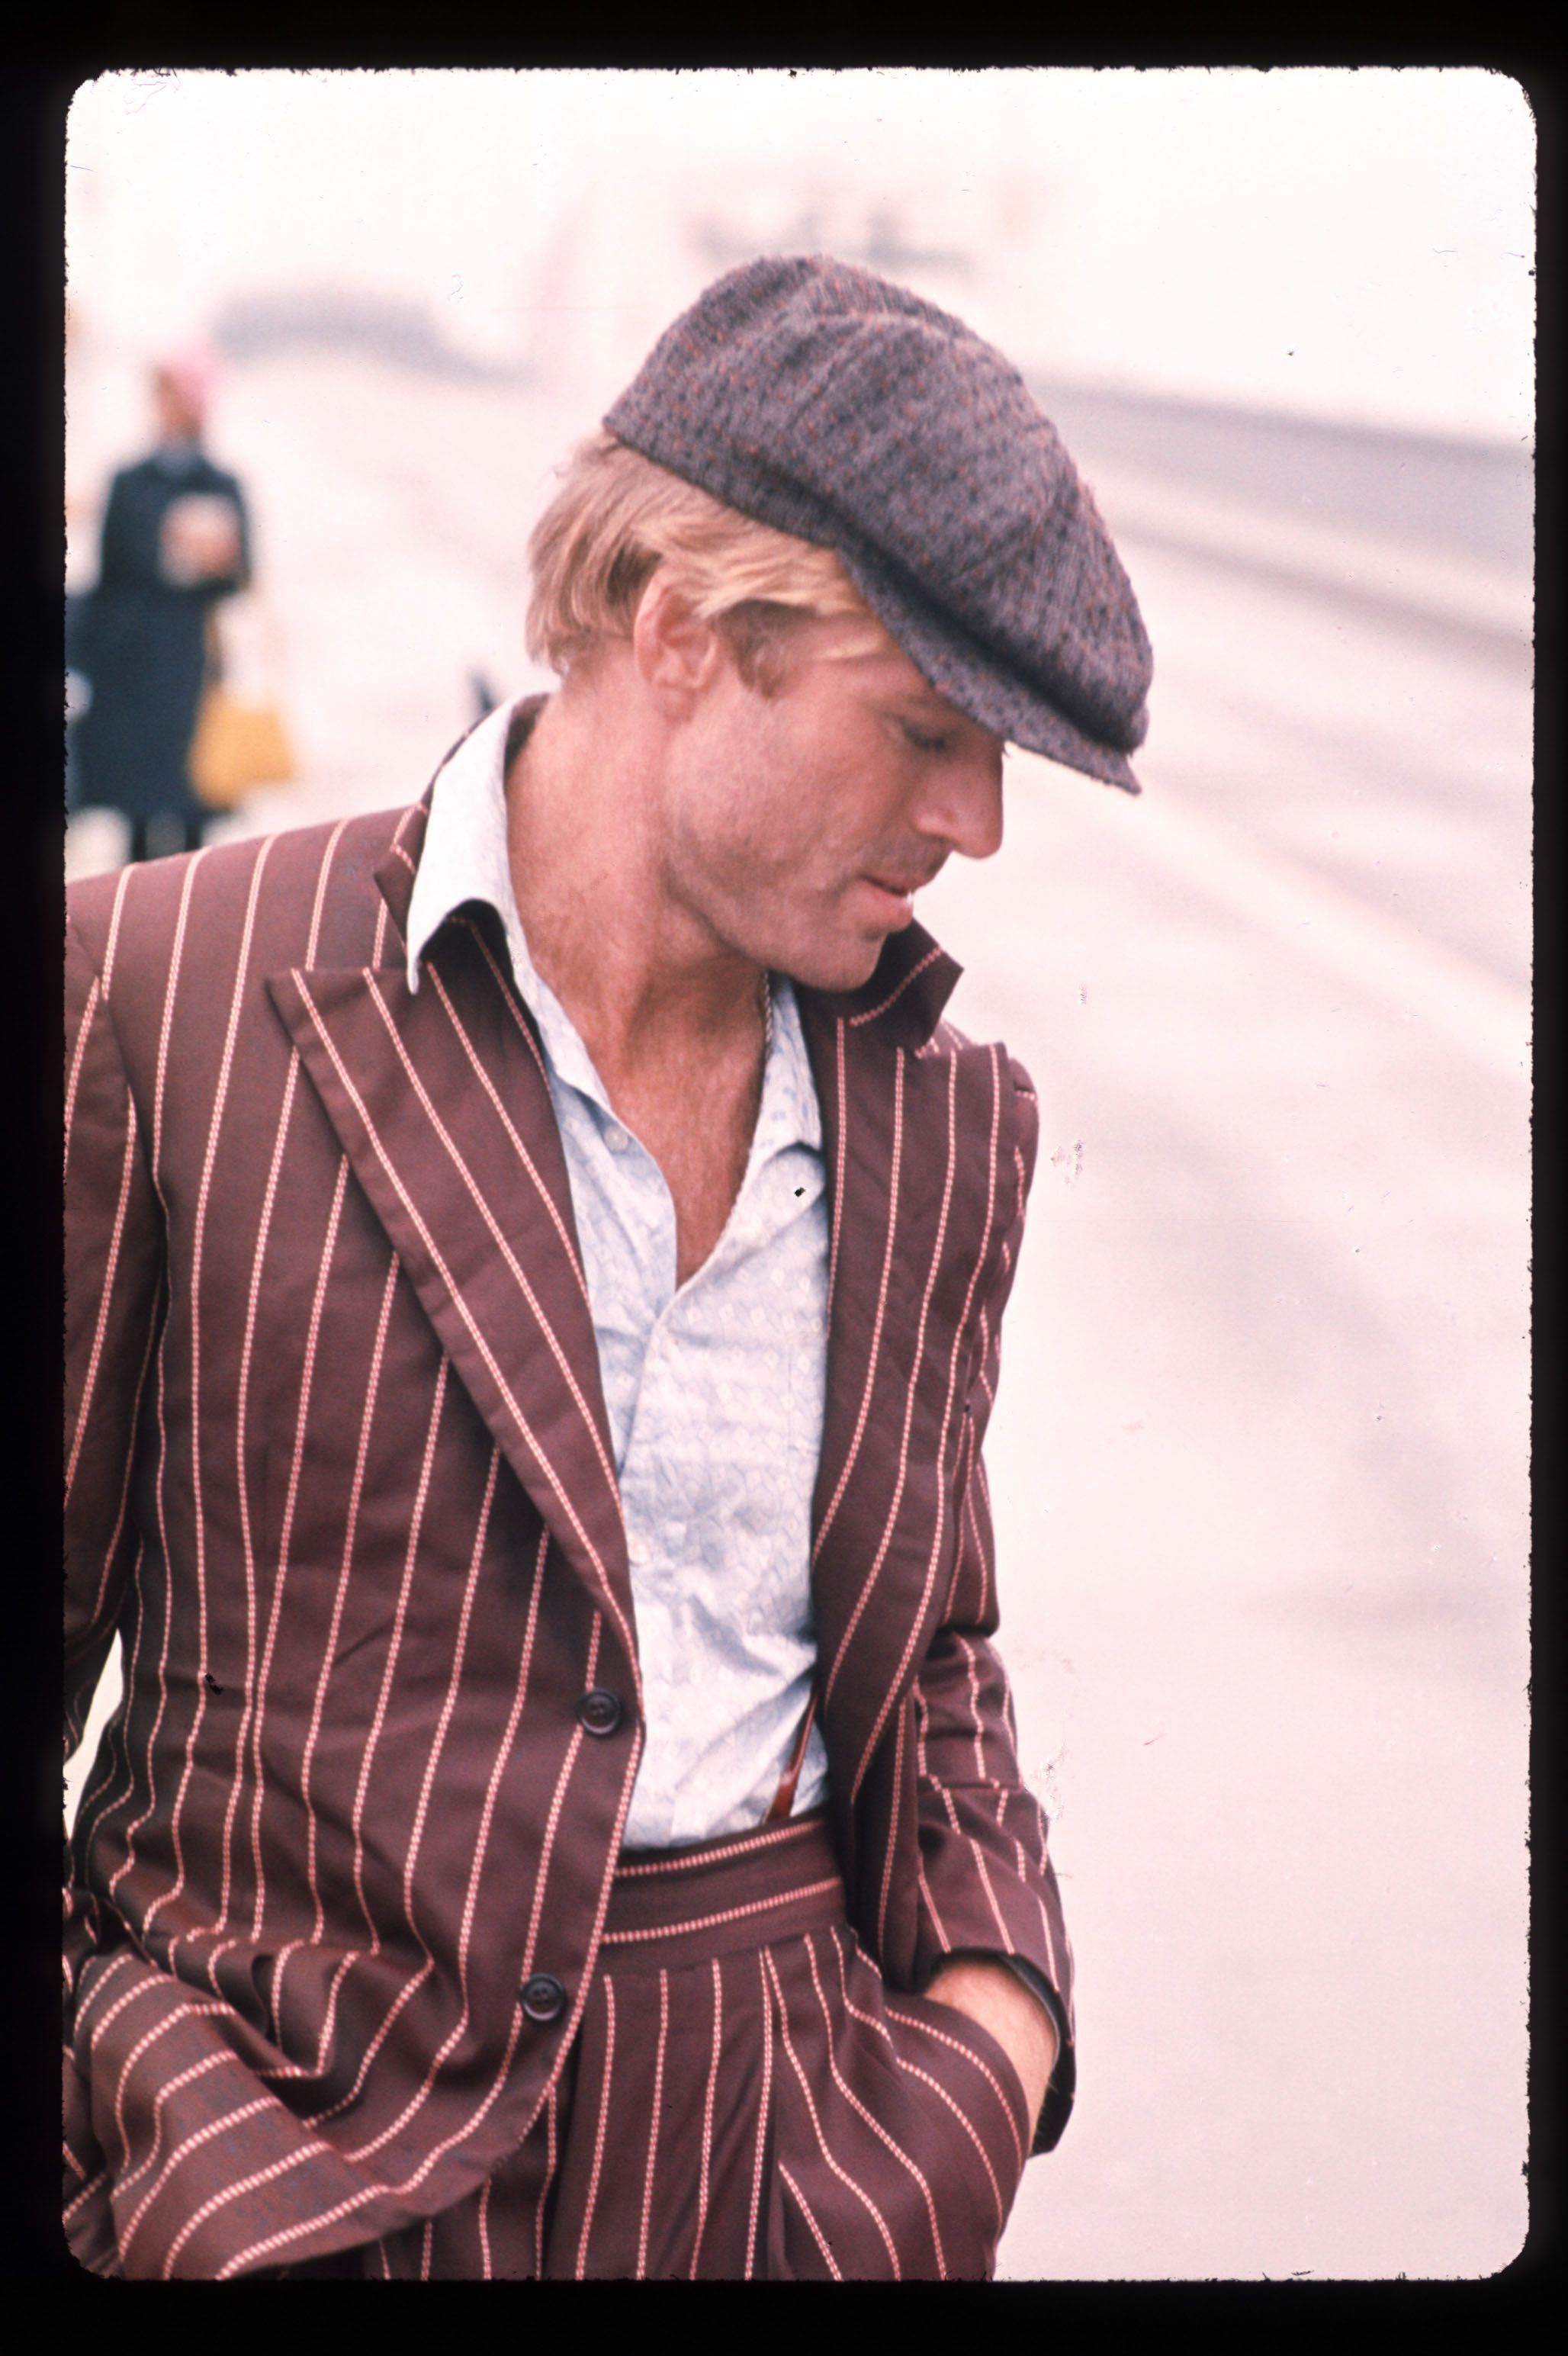 robert redford, robert redford moda, robert redford estilo, robert redford personajes, robert redford peliculas, robert redford fashion, robert redford style, robert redford grooming, robert redford films, robert redford filmes, gatsby, jinete electrico, electric horseman, barefoot in the park, descalzos en el parque, condor robert redford, gatsby robert redford, three days condor, tres dias condor, el golpe, the sting, redford moda, redford style, redford fashion, redford estilo